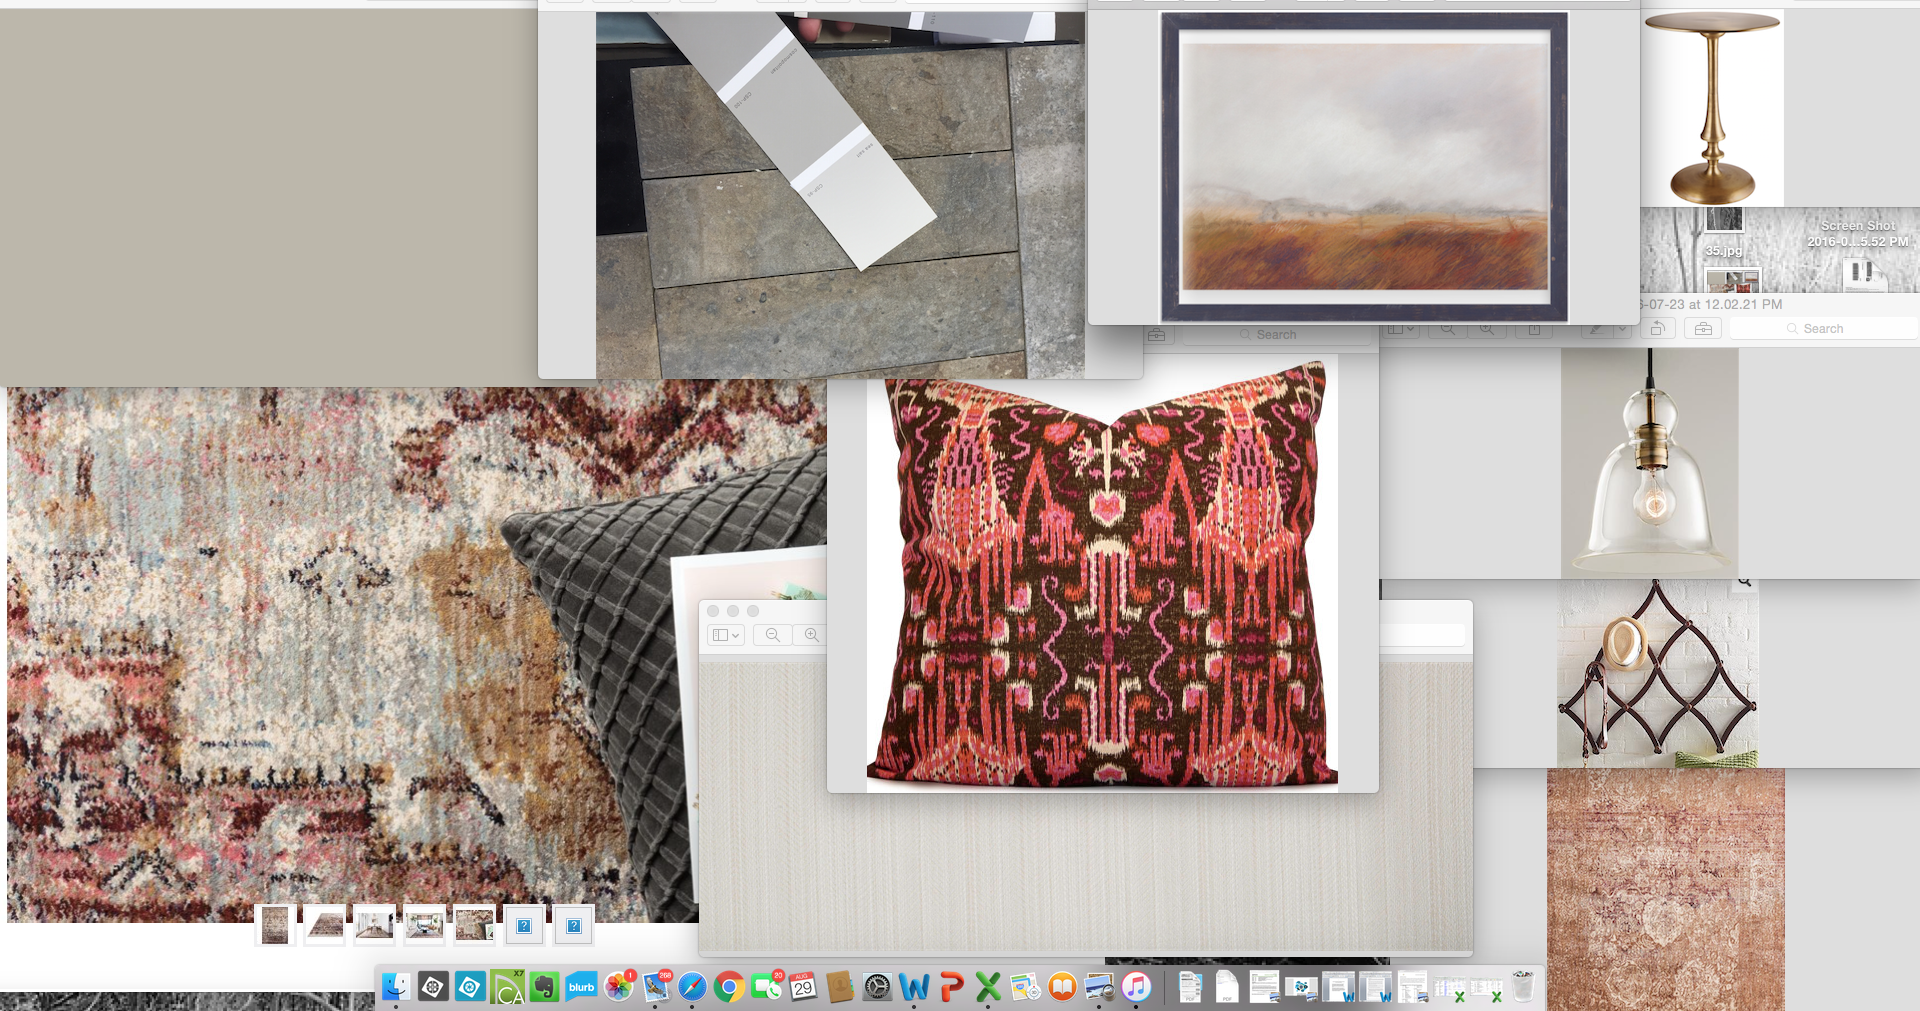 Any number of windows are open on our computer at all times. Here is a screen shot of my brainstorm session with colors, textures, and specific items we picked out for the Lippie Project.